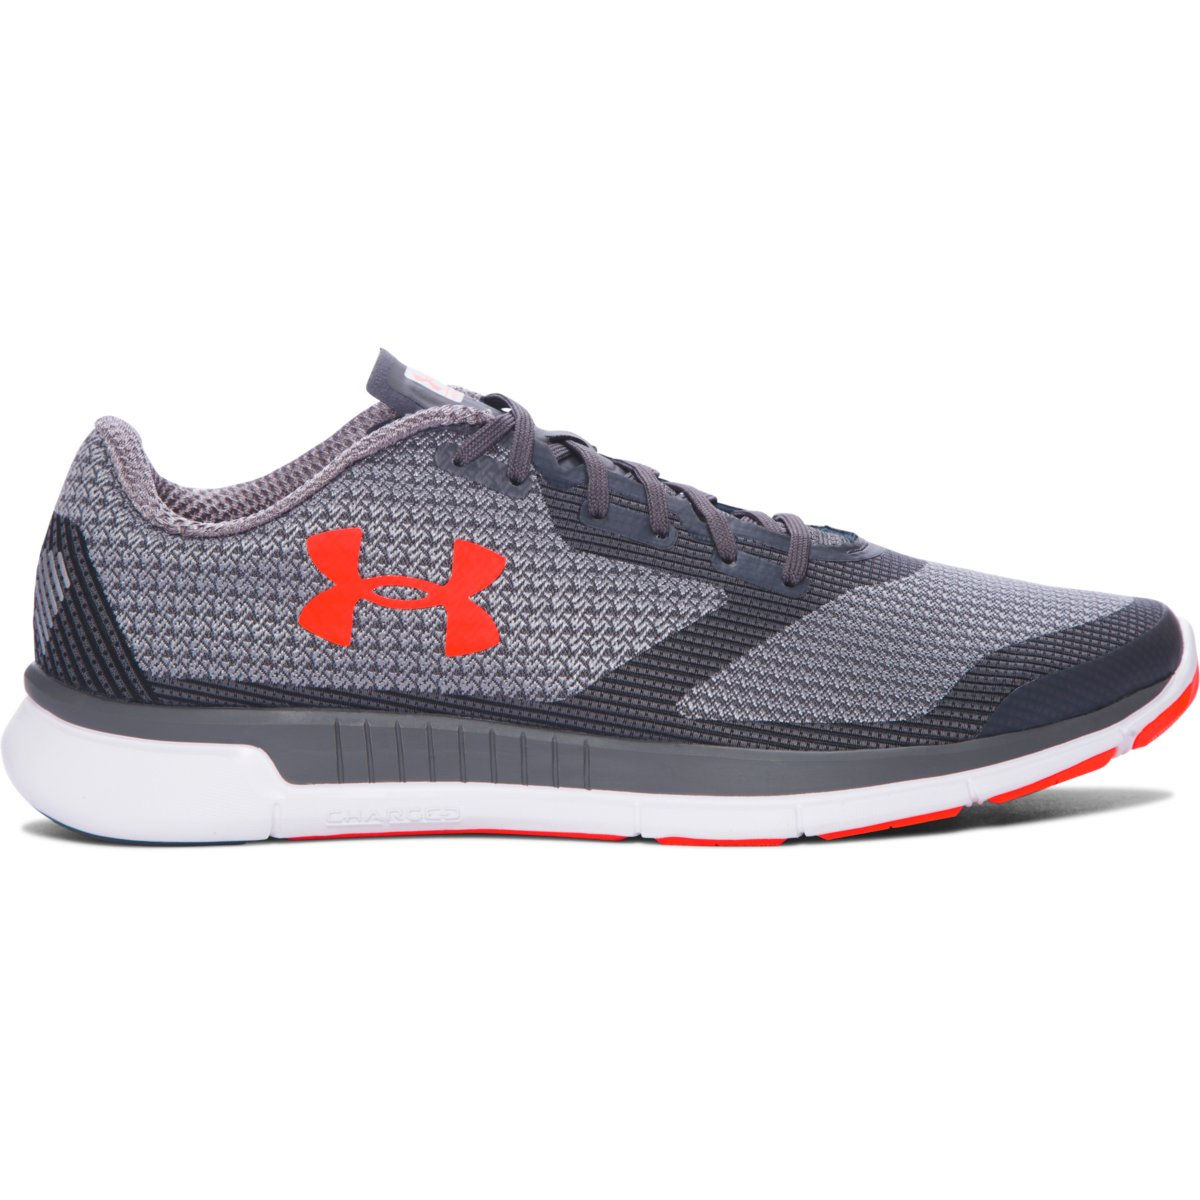 Chaussures Under Armour Charged Lightning (PE17) - 7 UK Rhino Gray/Gray Chaussures de running amorties